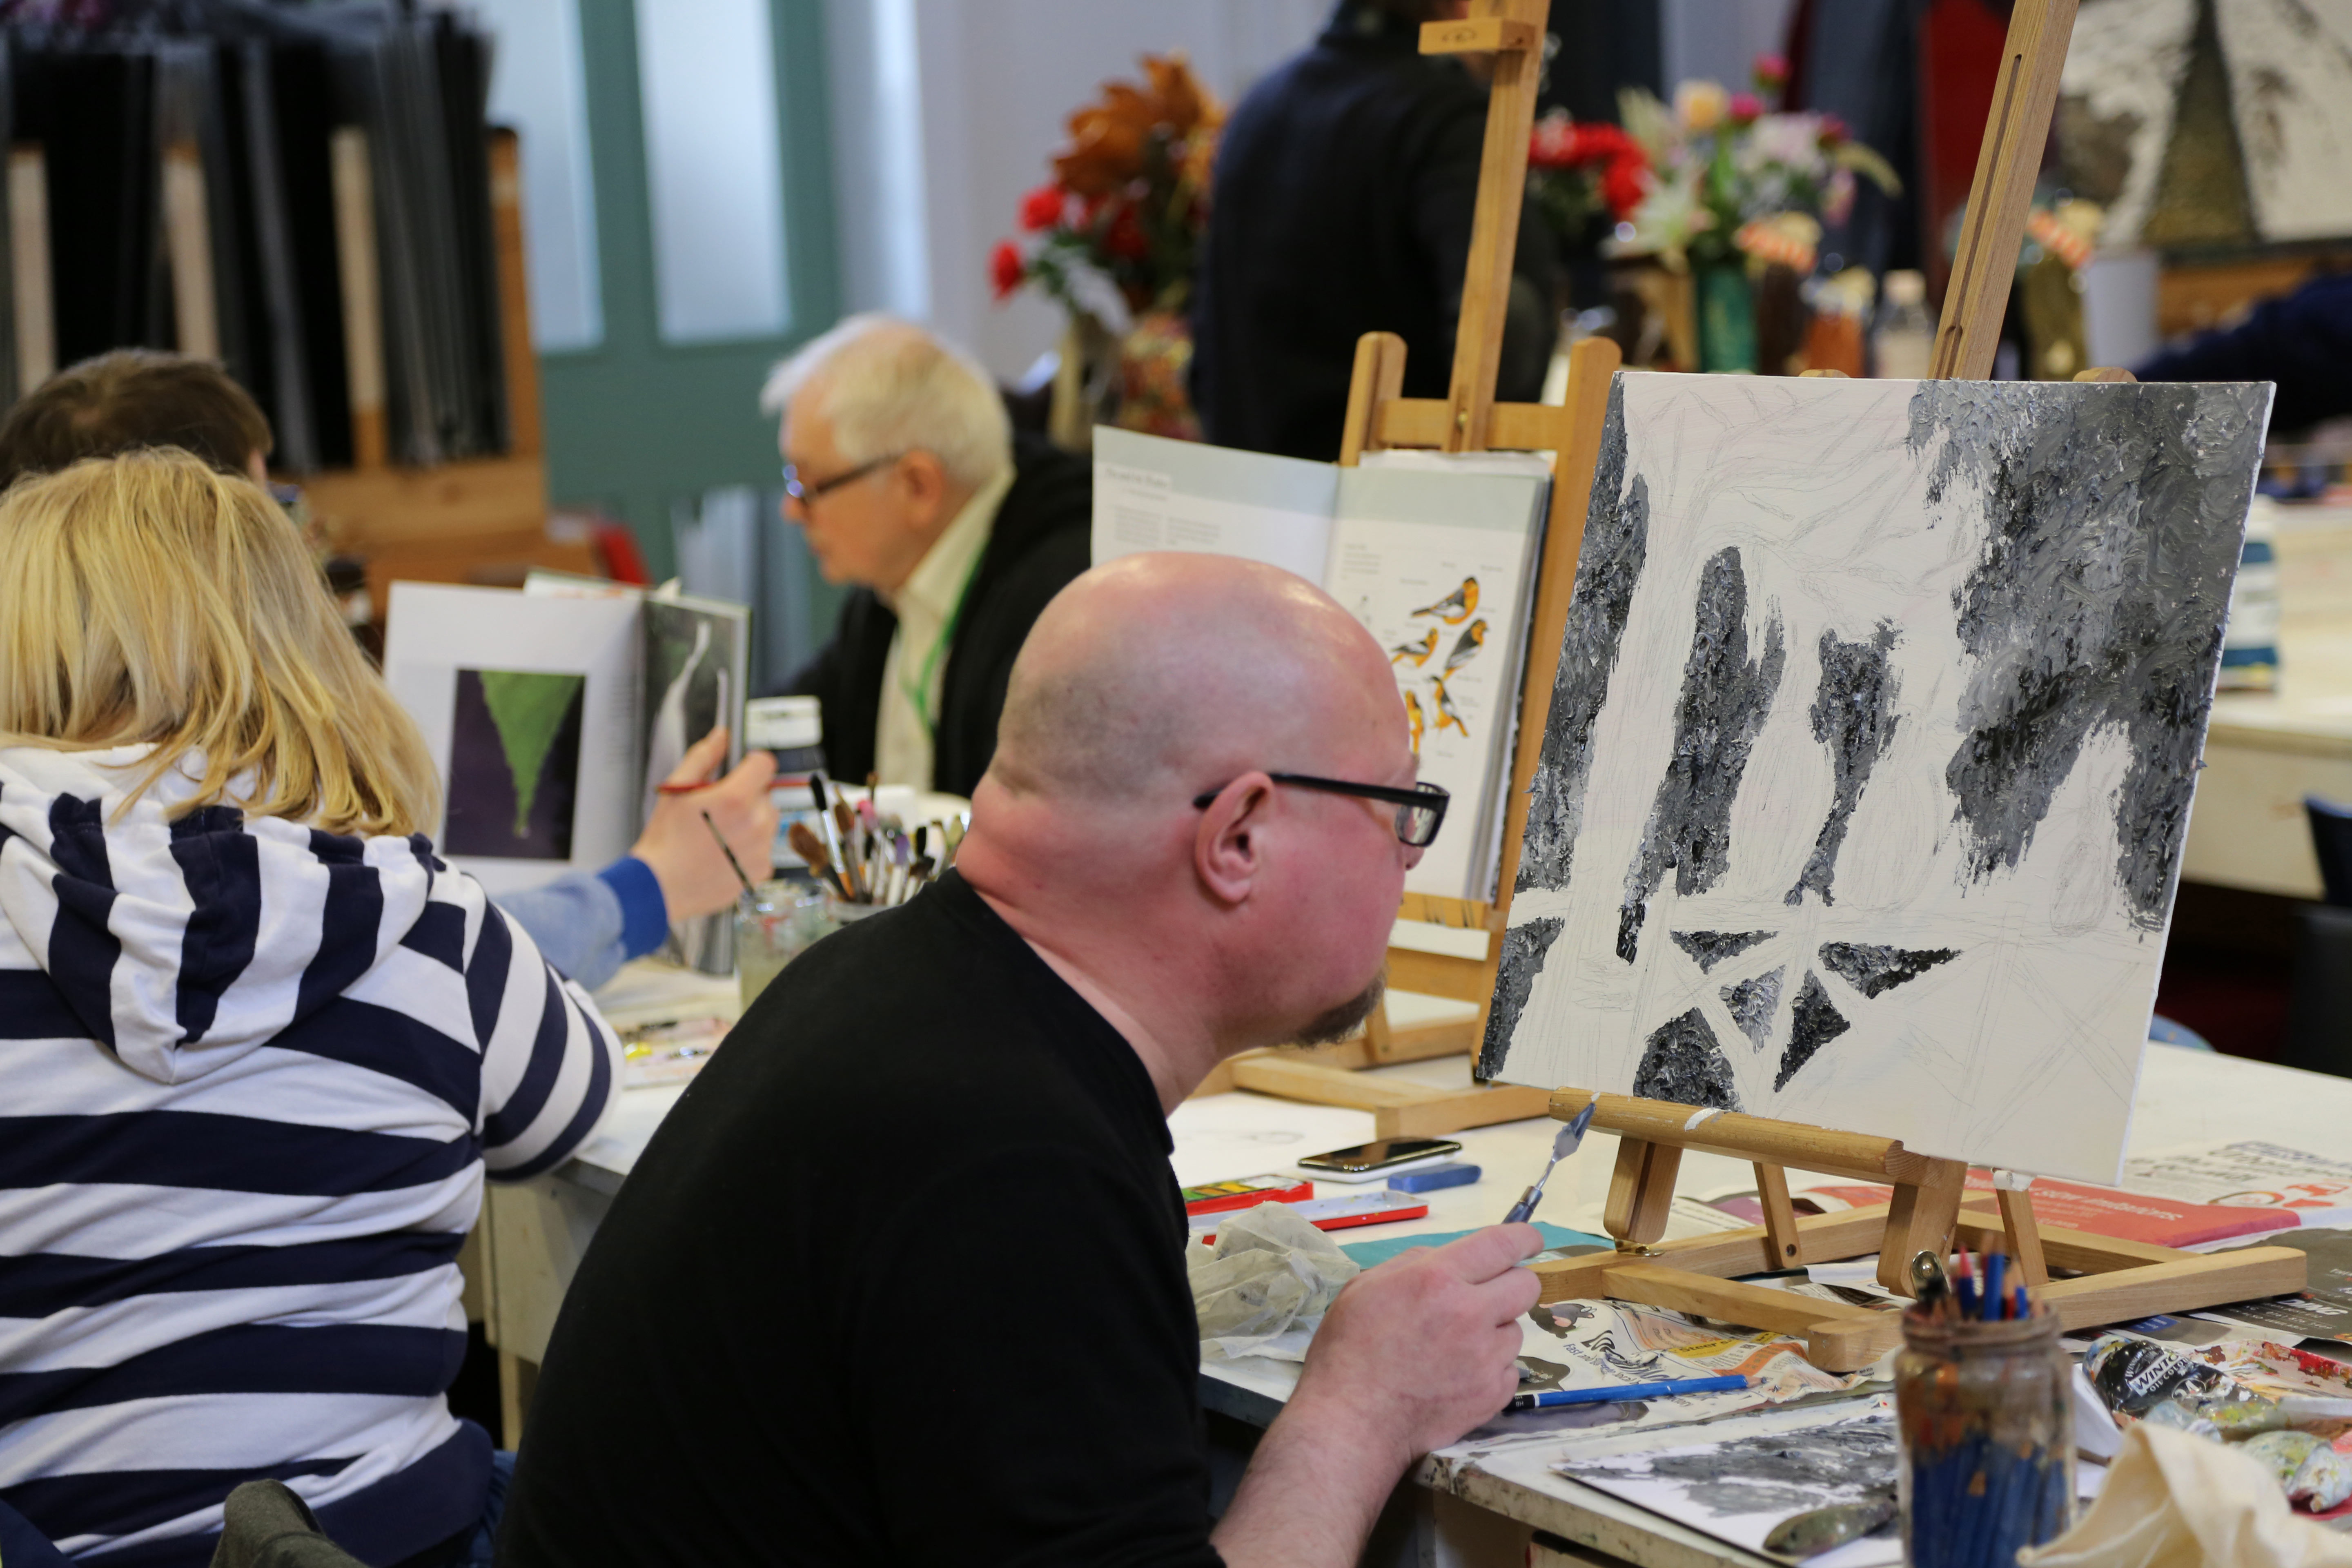 Arts for health projects across Greater Manchester were brought before healthcare professionals